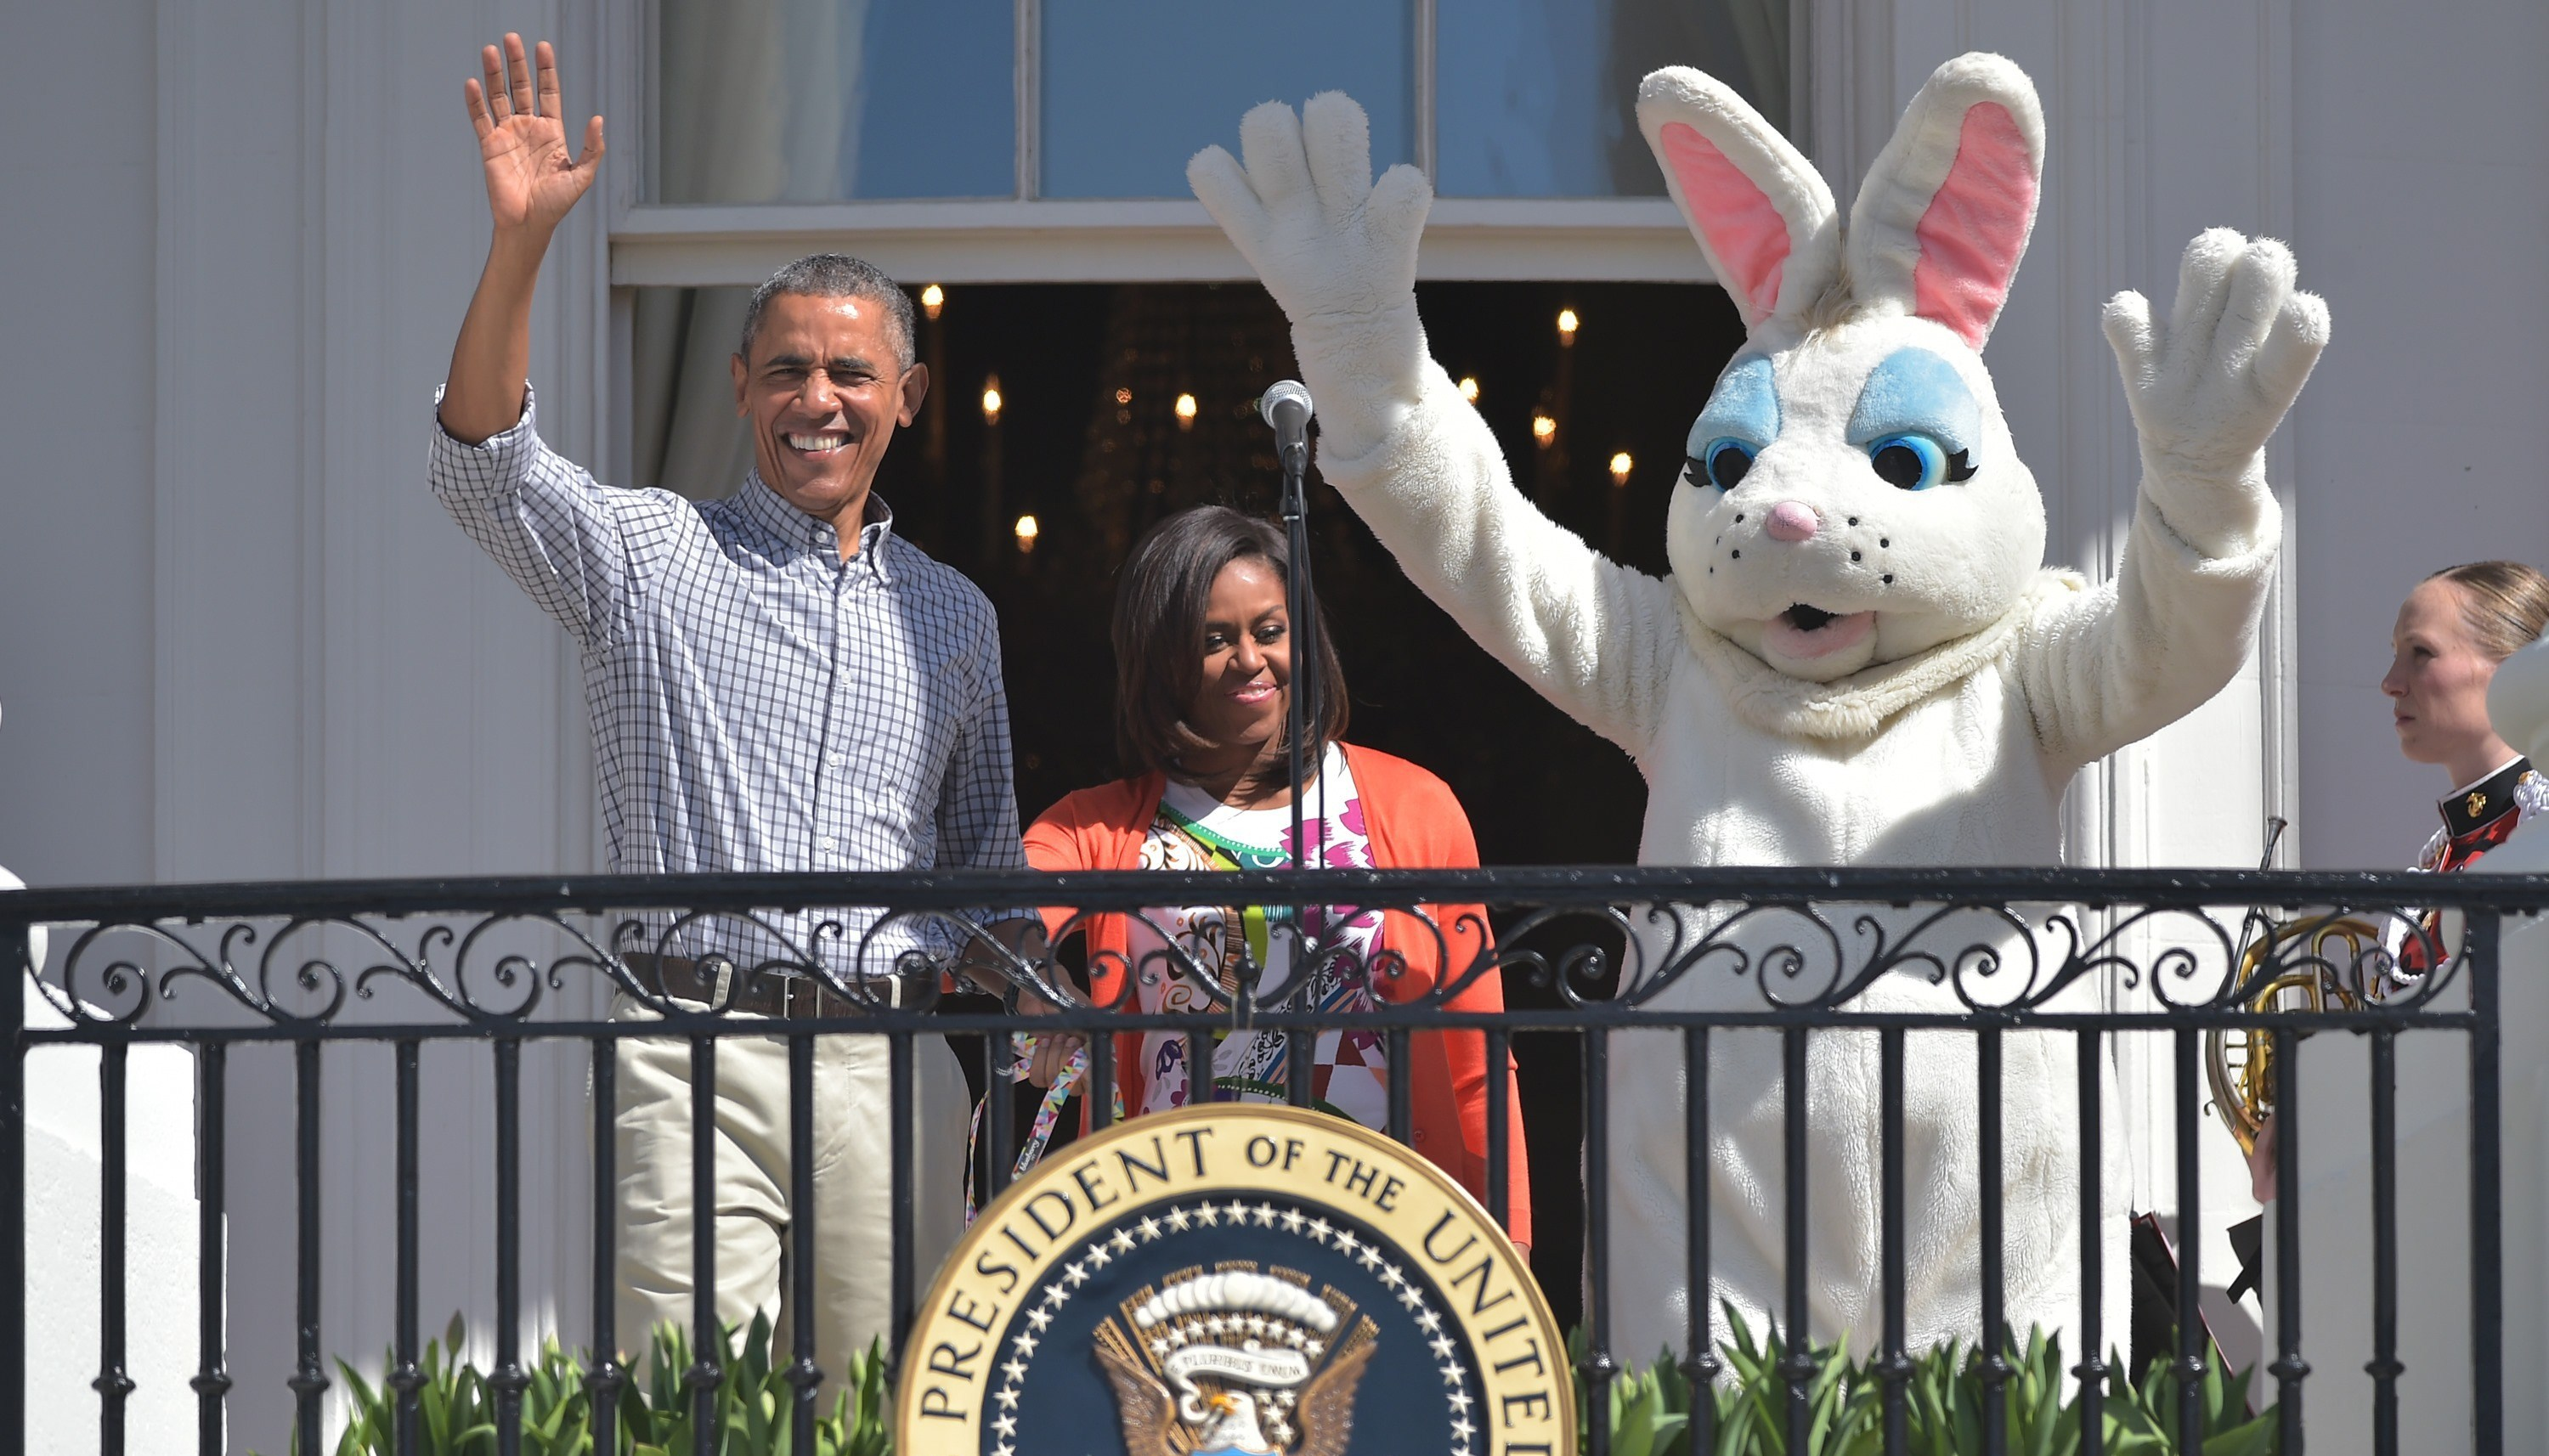 US-POLITICS-EASTER-OBAMA